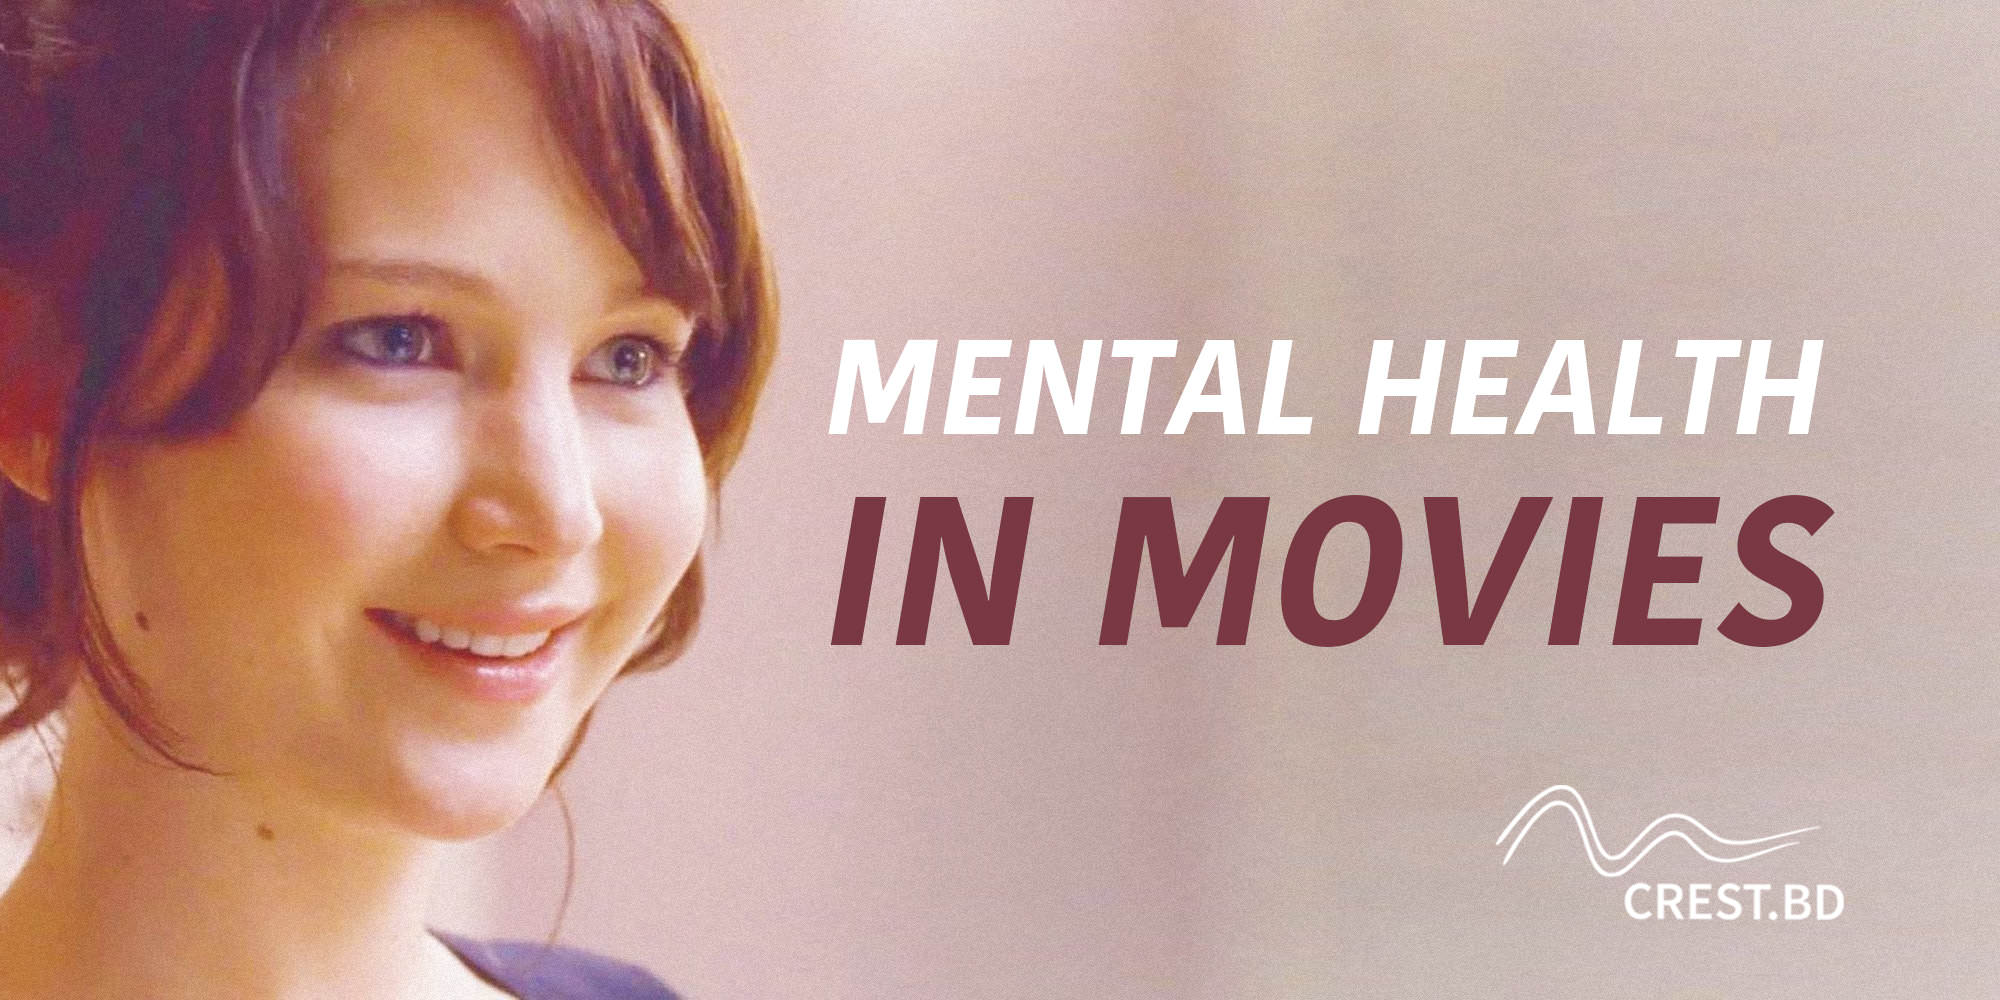 Mental Health and Movies: Recommendations on What to Watch While Self-Isolating